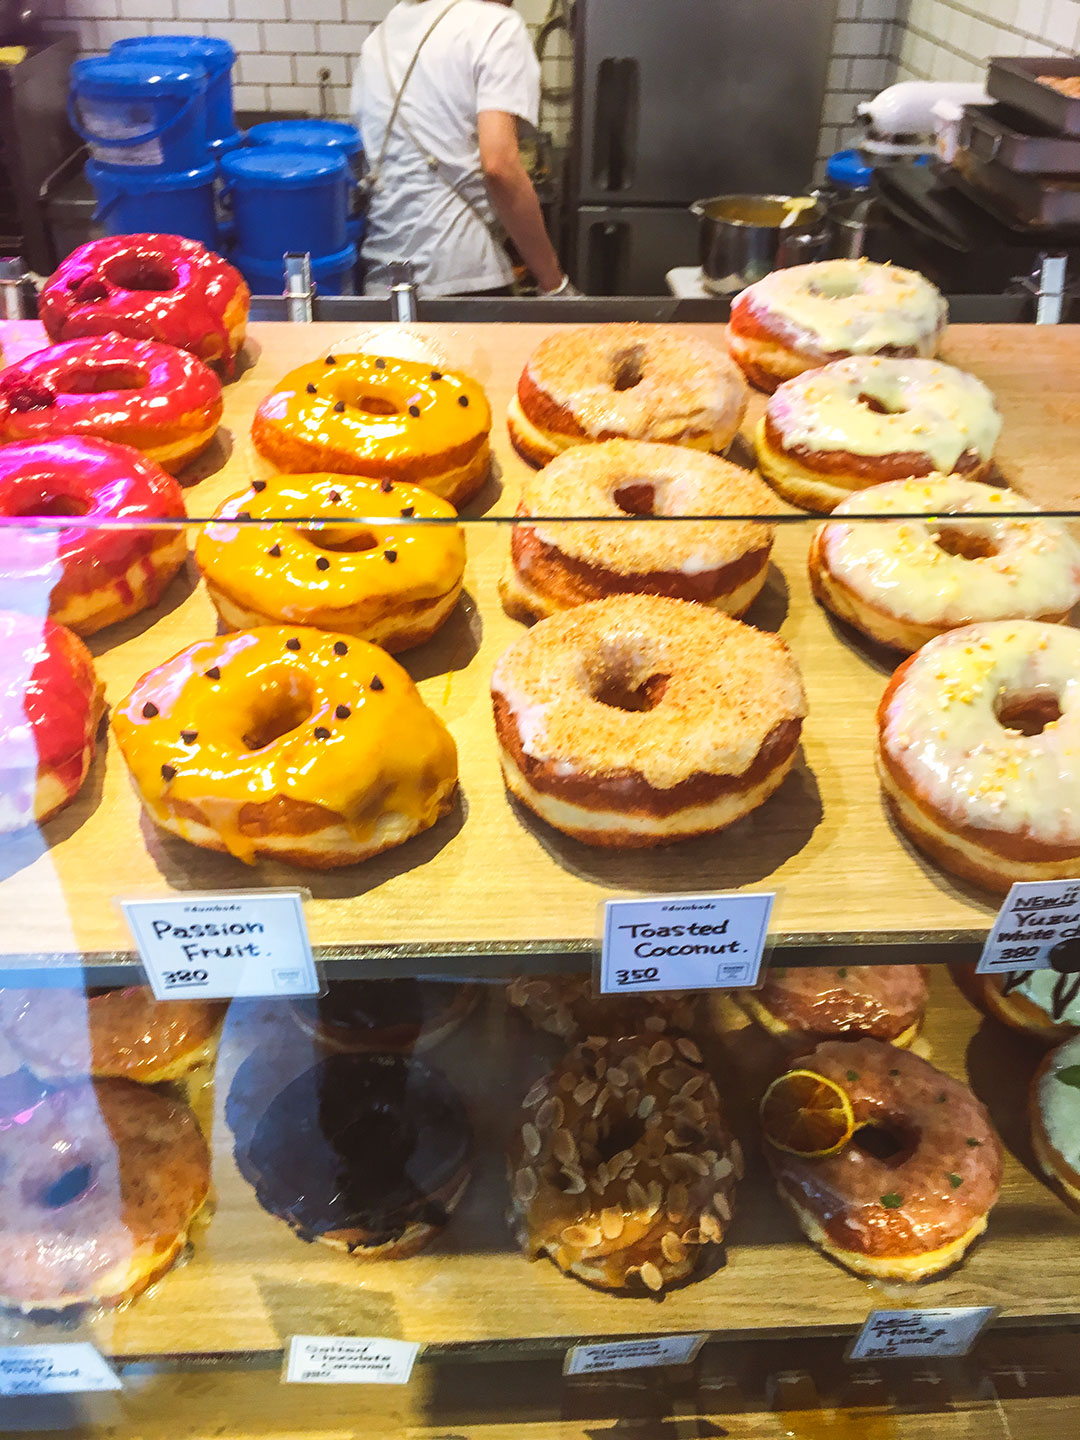 Passionfruit and Toasted coconut doughnuts at Dumbo Doughnuts Tokyo